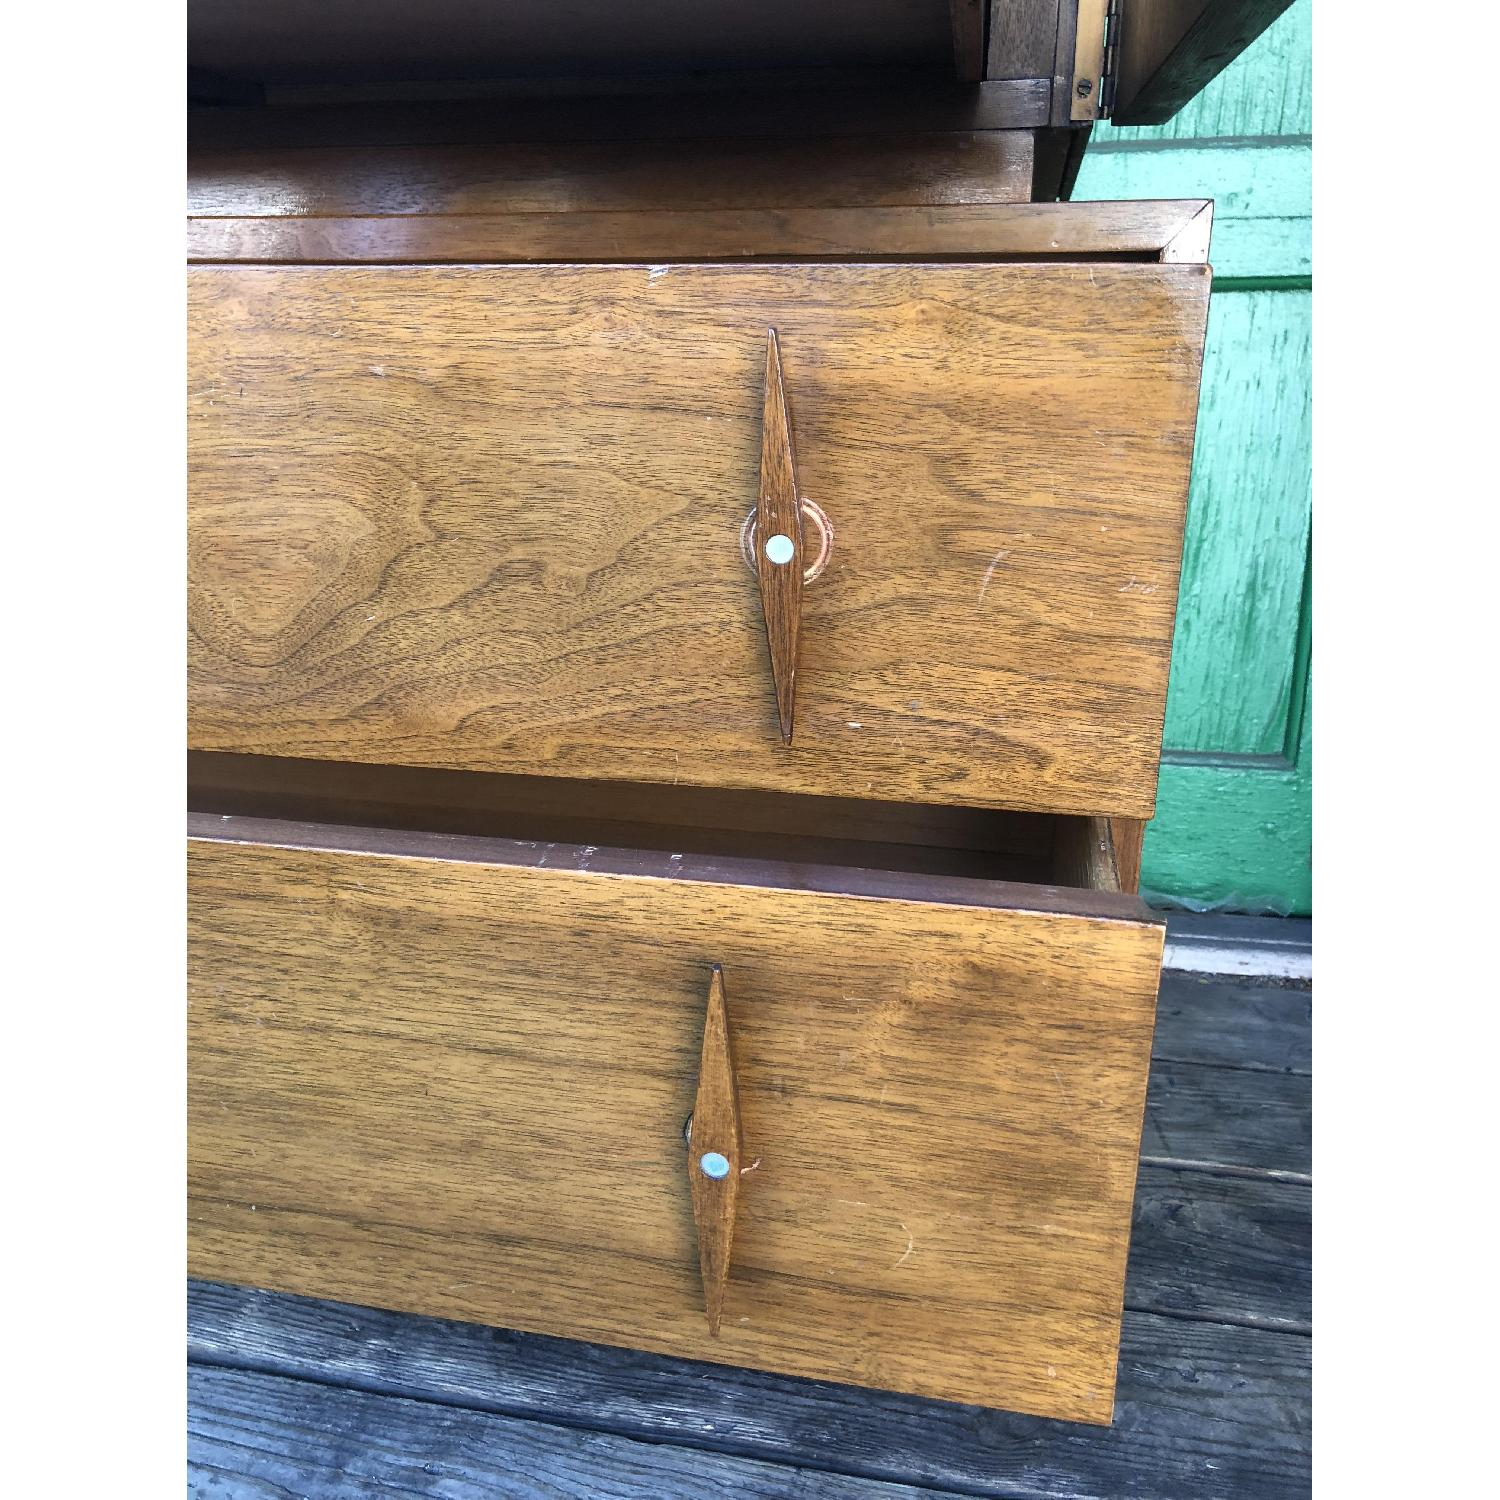 Mid century Highboy Dresser with Carved Wood Pulls - image-12